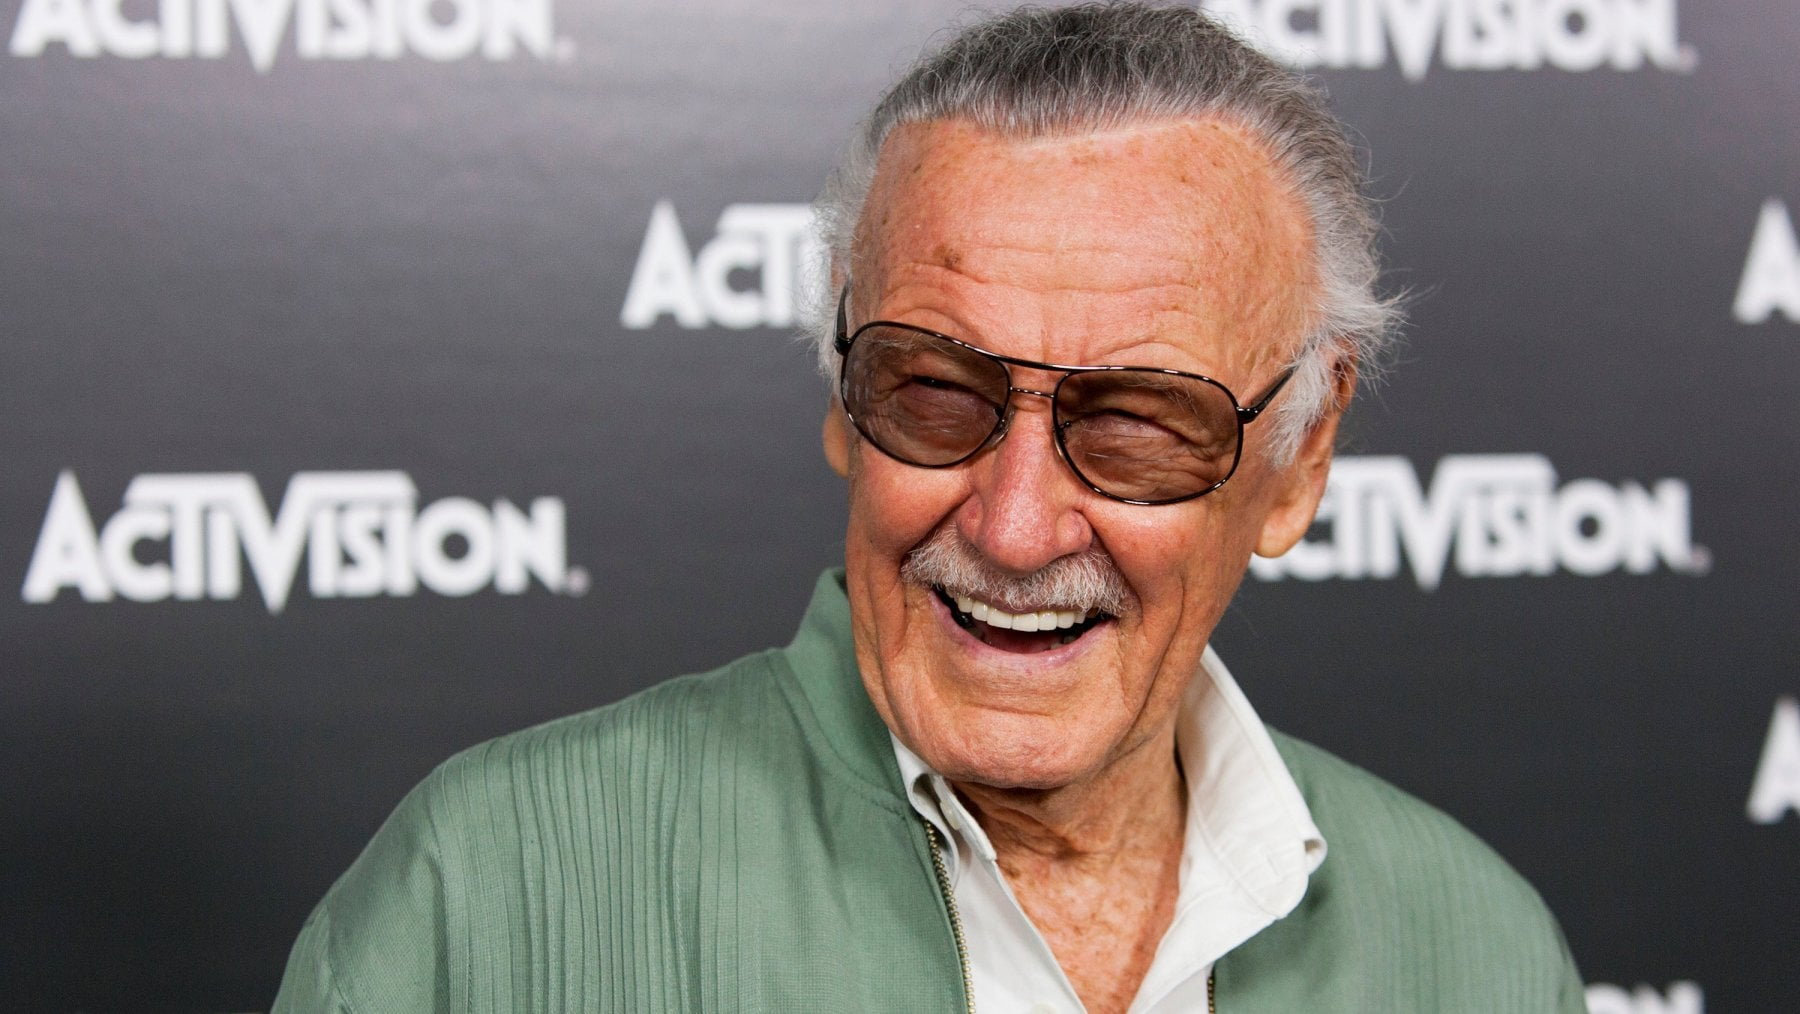 Chi era Stan Lee, il creatore dei supereroi Marvel